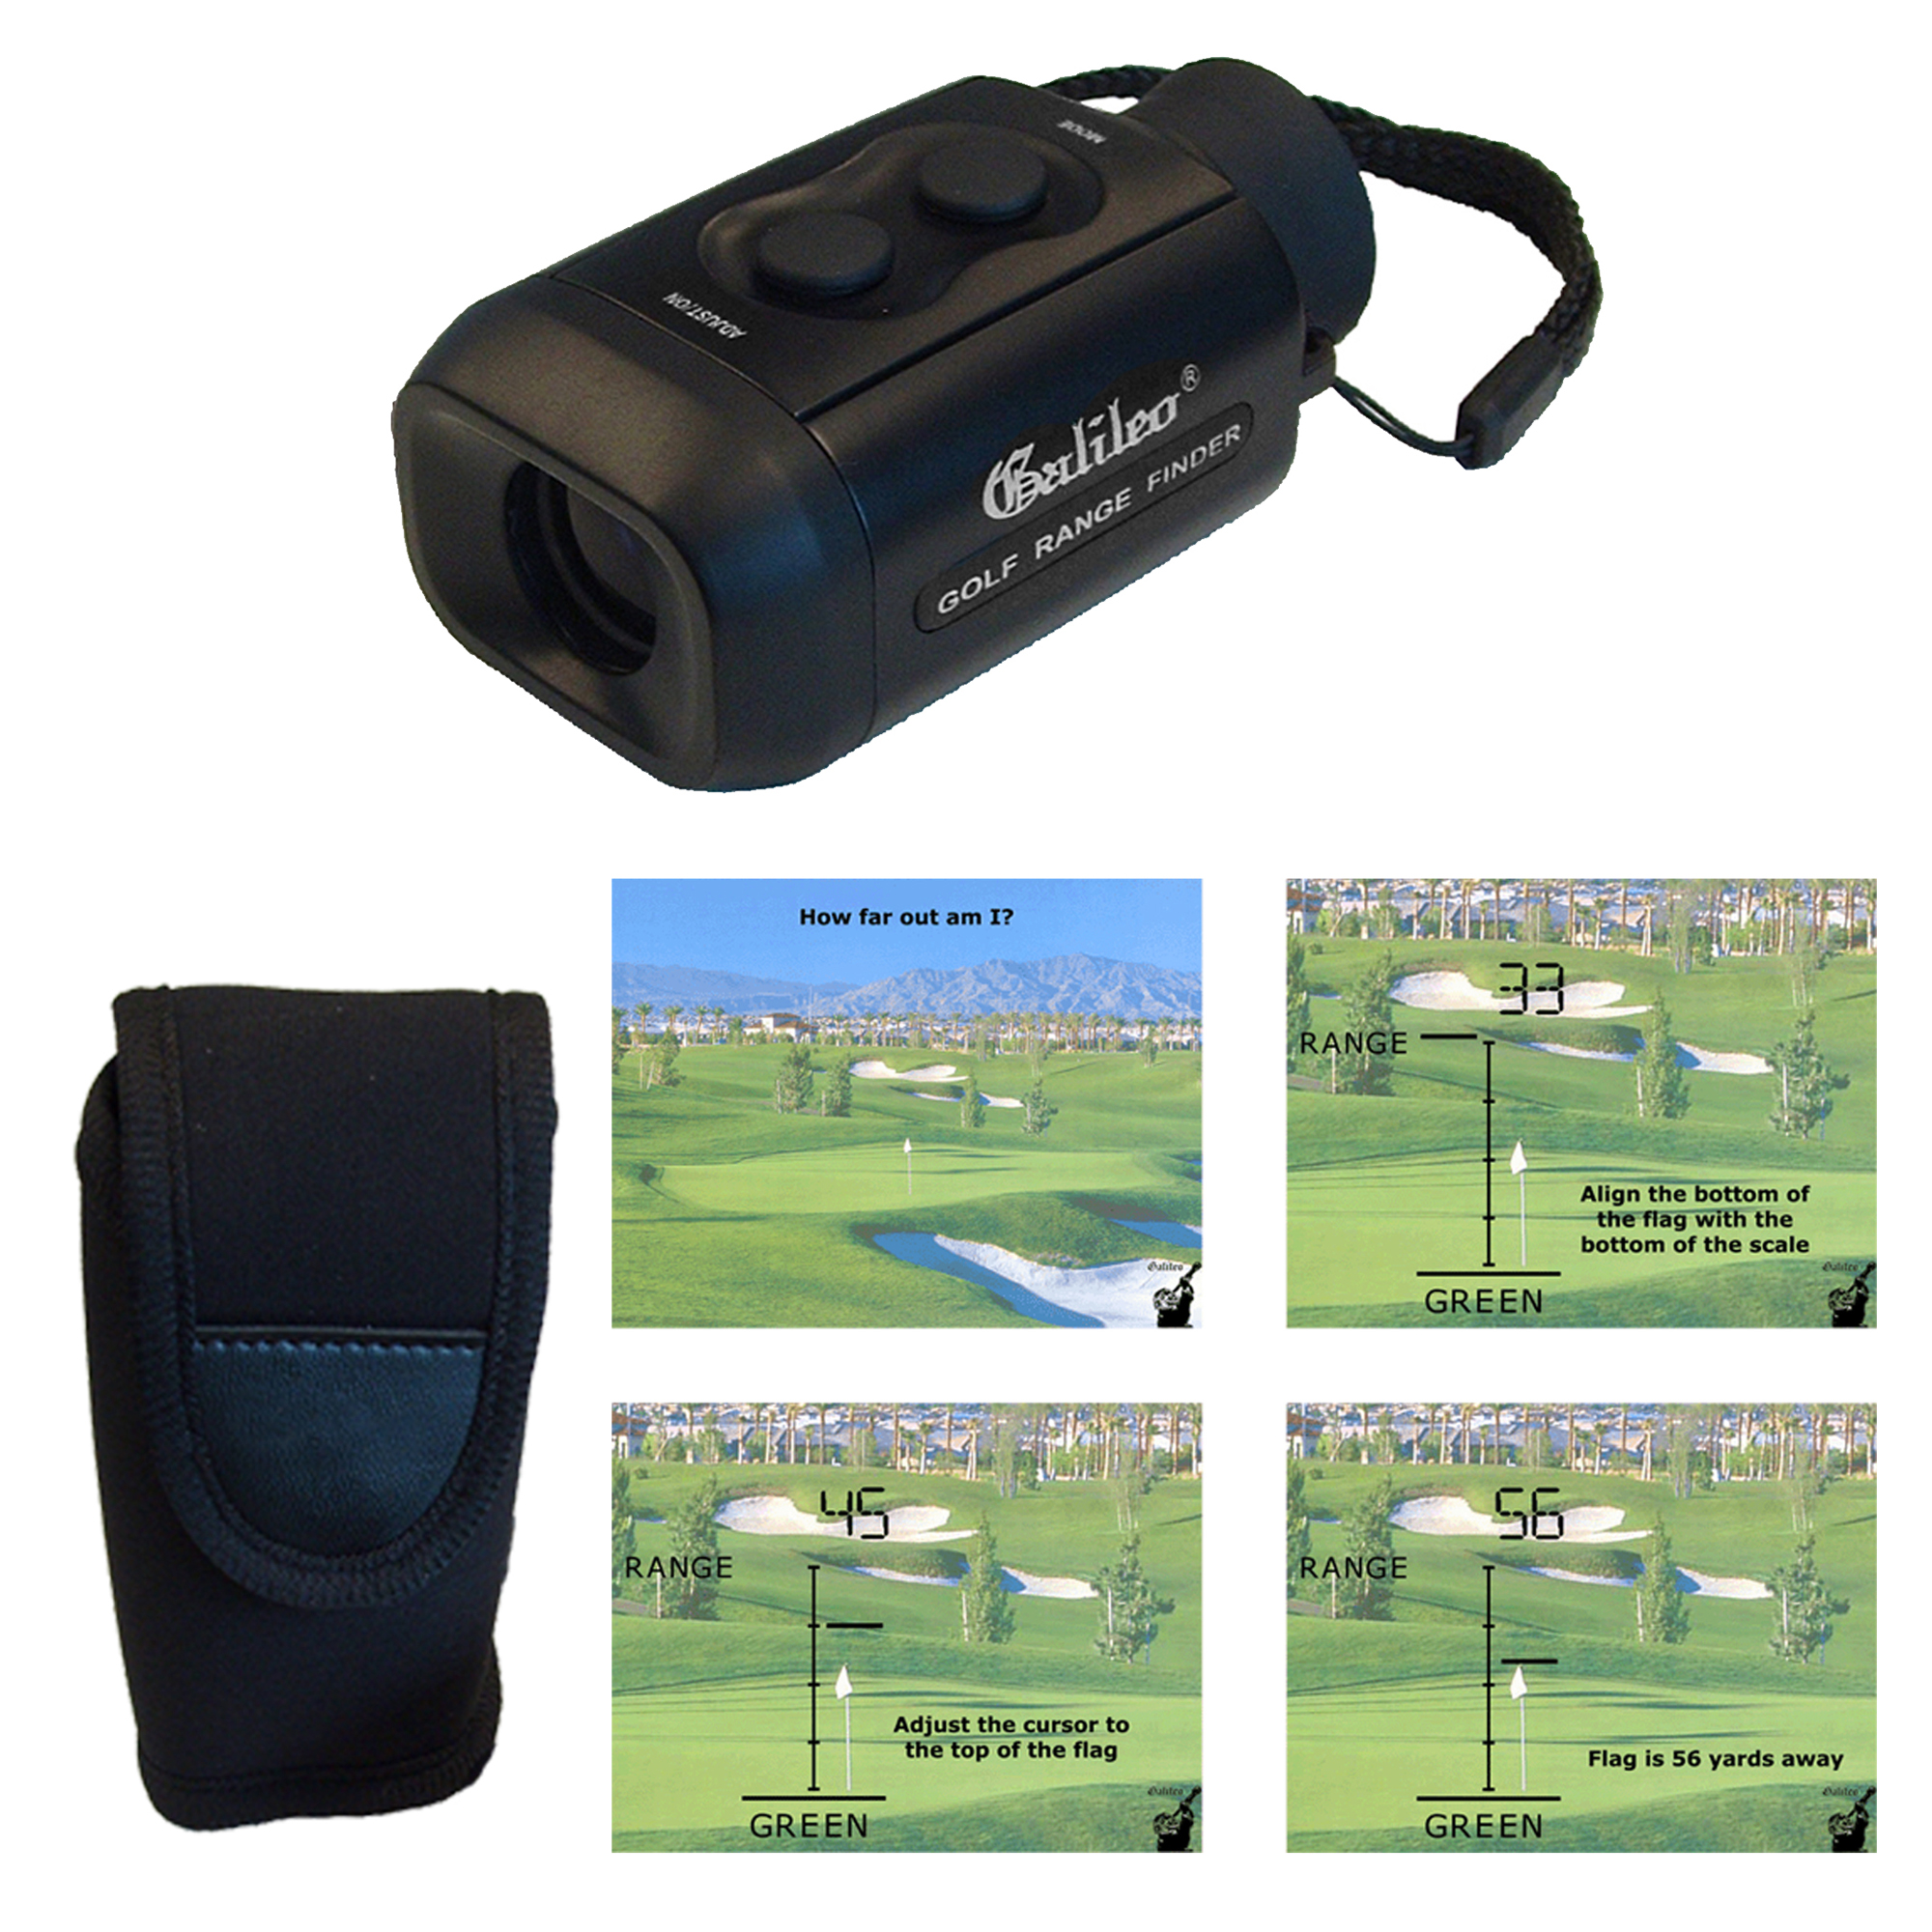 Galileo electronic Golfscope brings image 7 x closer with digital output to measure distance. Case and strap included.